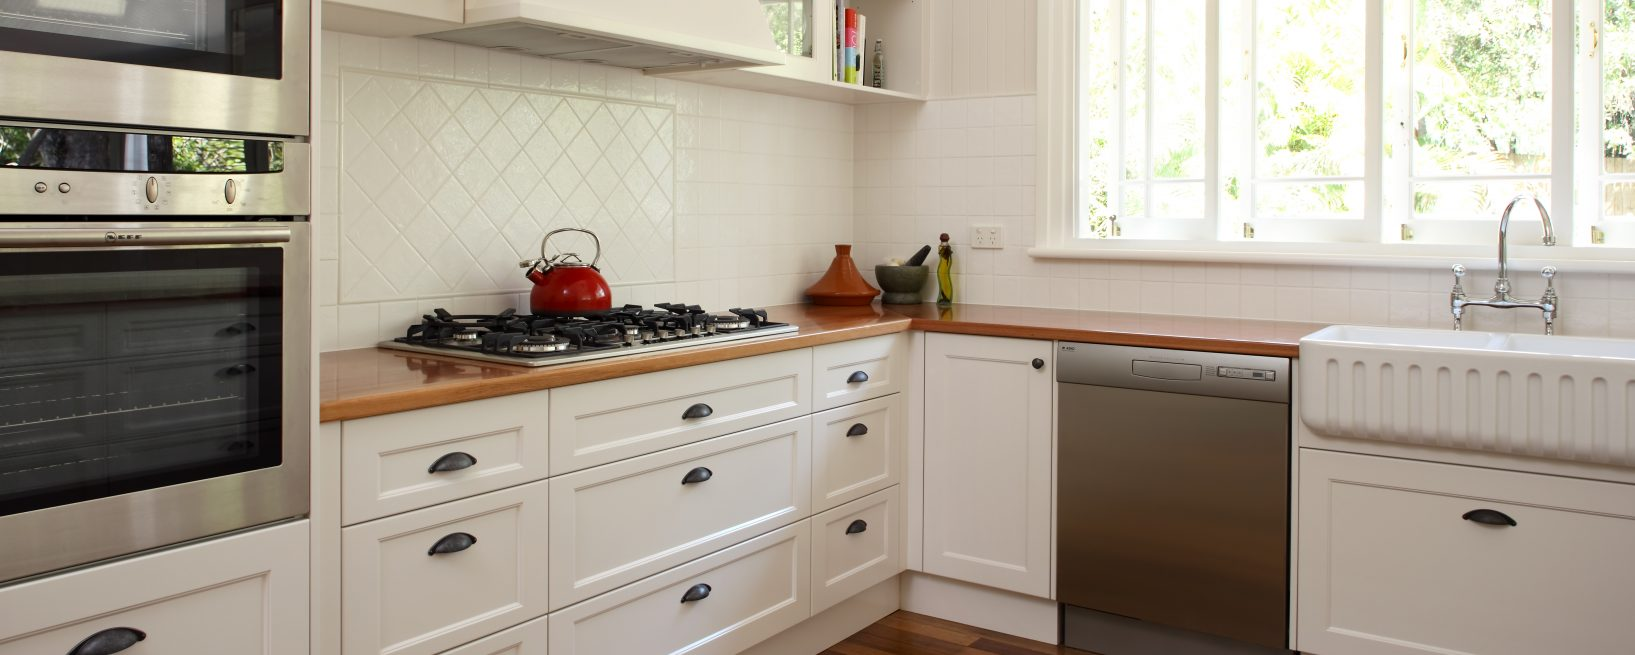 Kelvin Grove - Kitchen Renovation